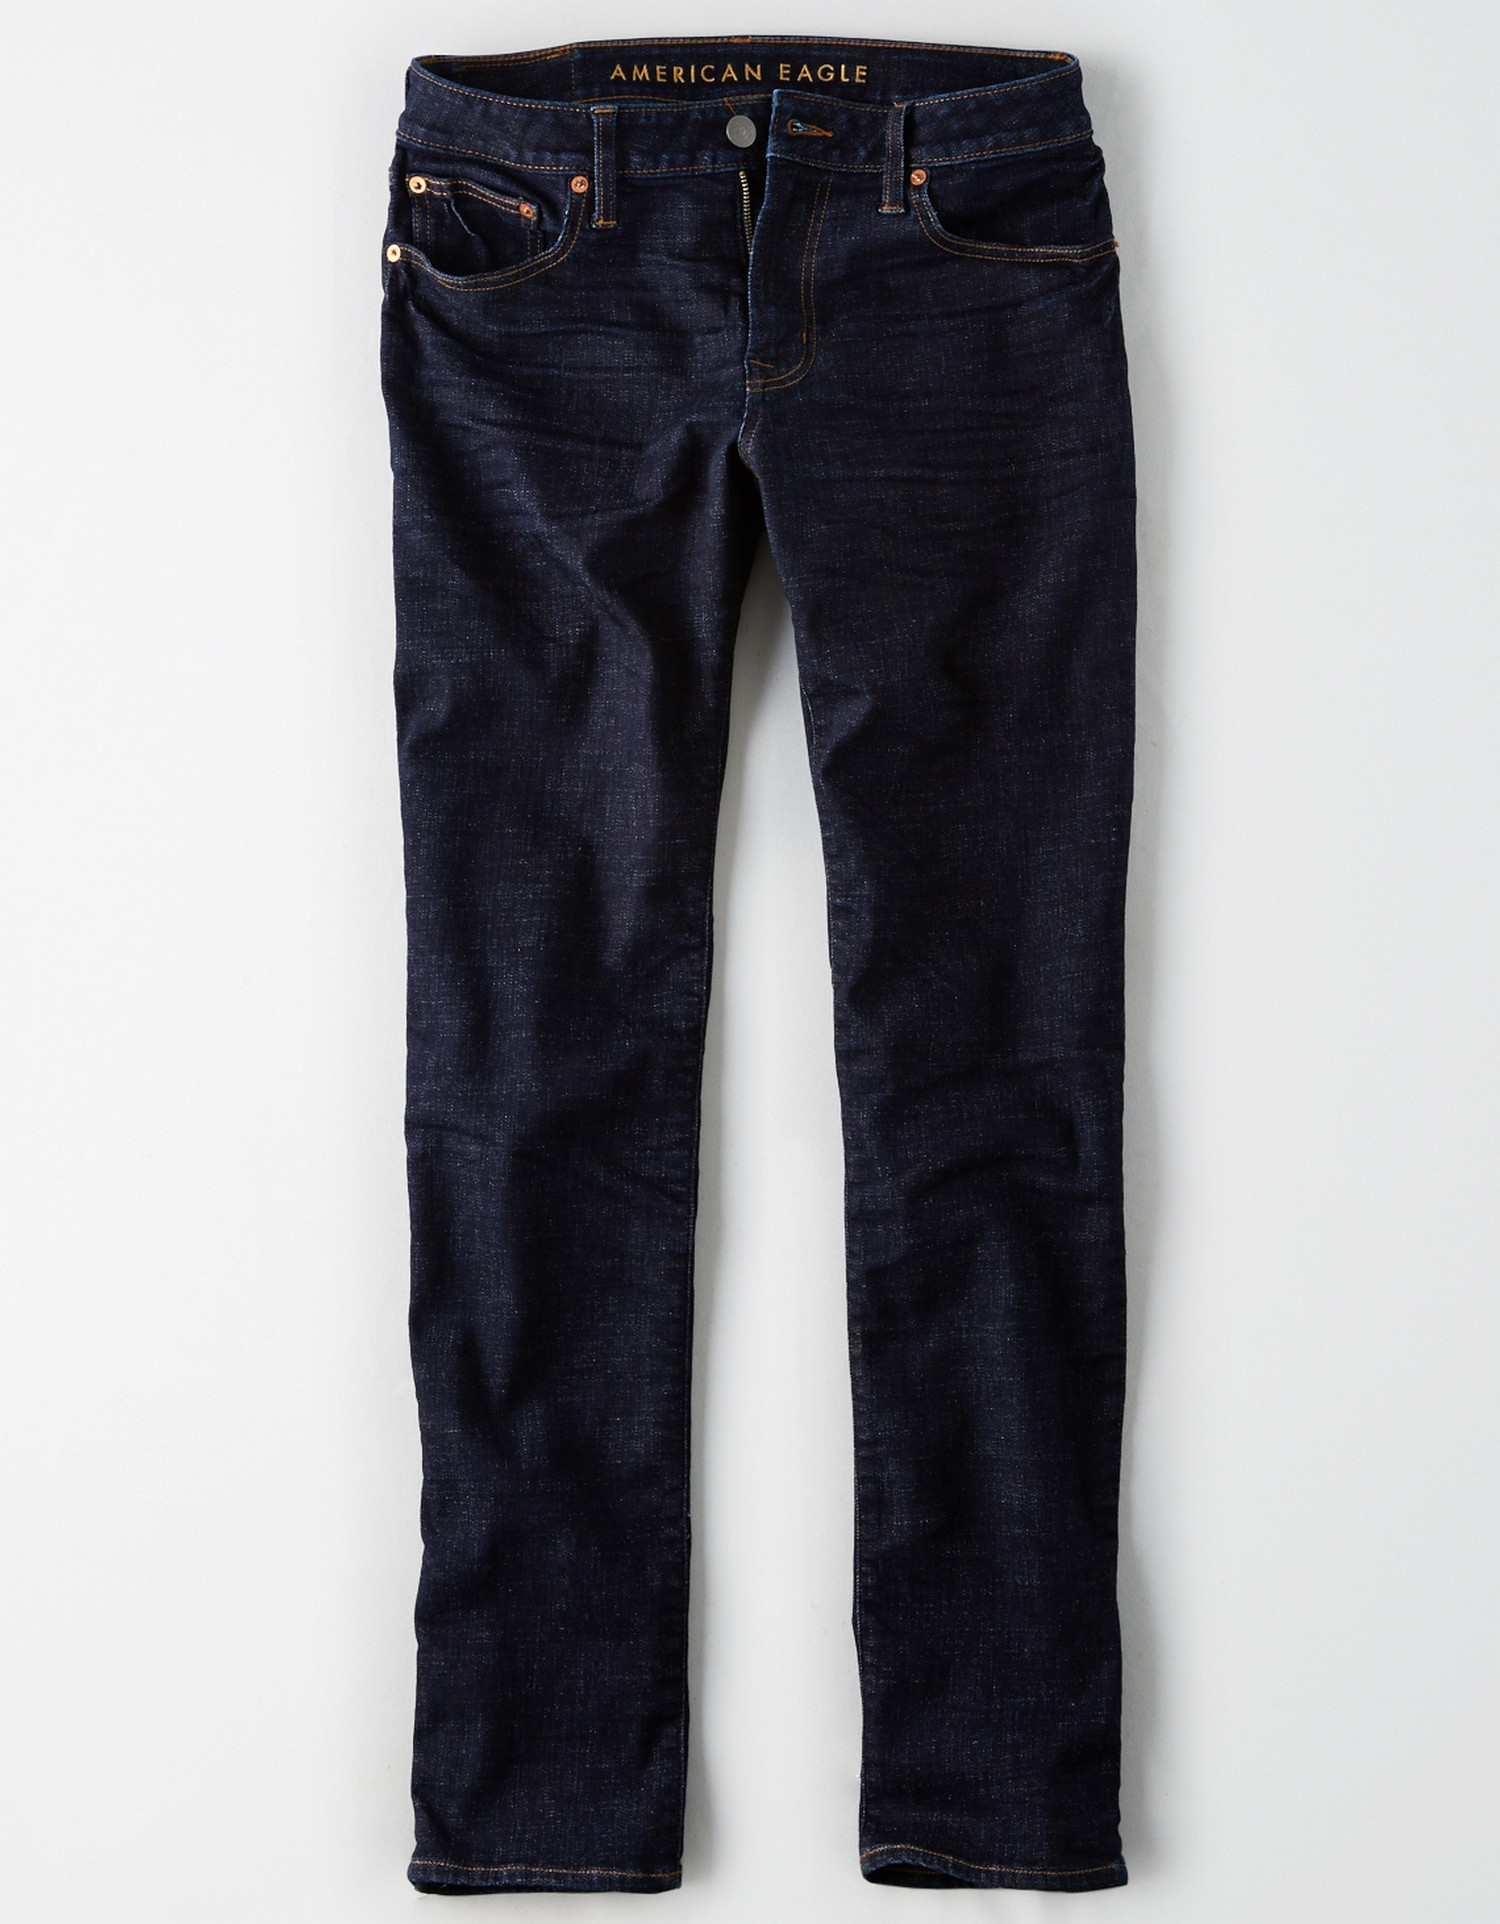 AE - M - Denim - AEO NE(X)T LEVEL FLEX SLIM STRAIGHT JEAN - Dark Wash - Dull dirty silver button - shiny copper rivets - no destroy KS